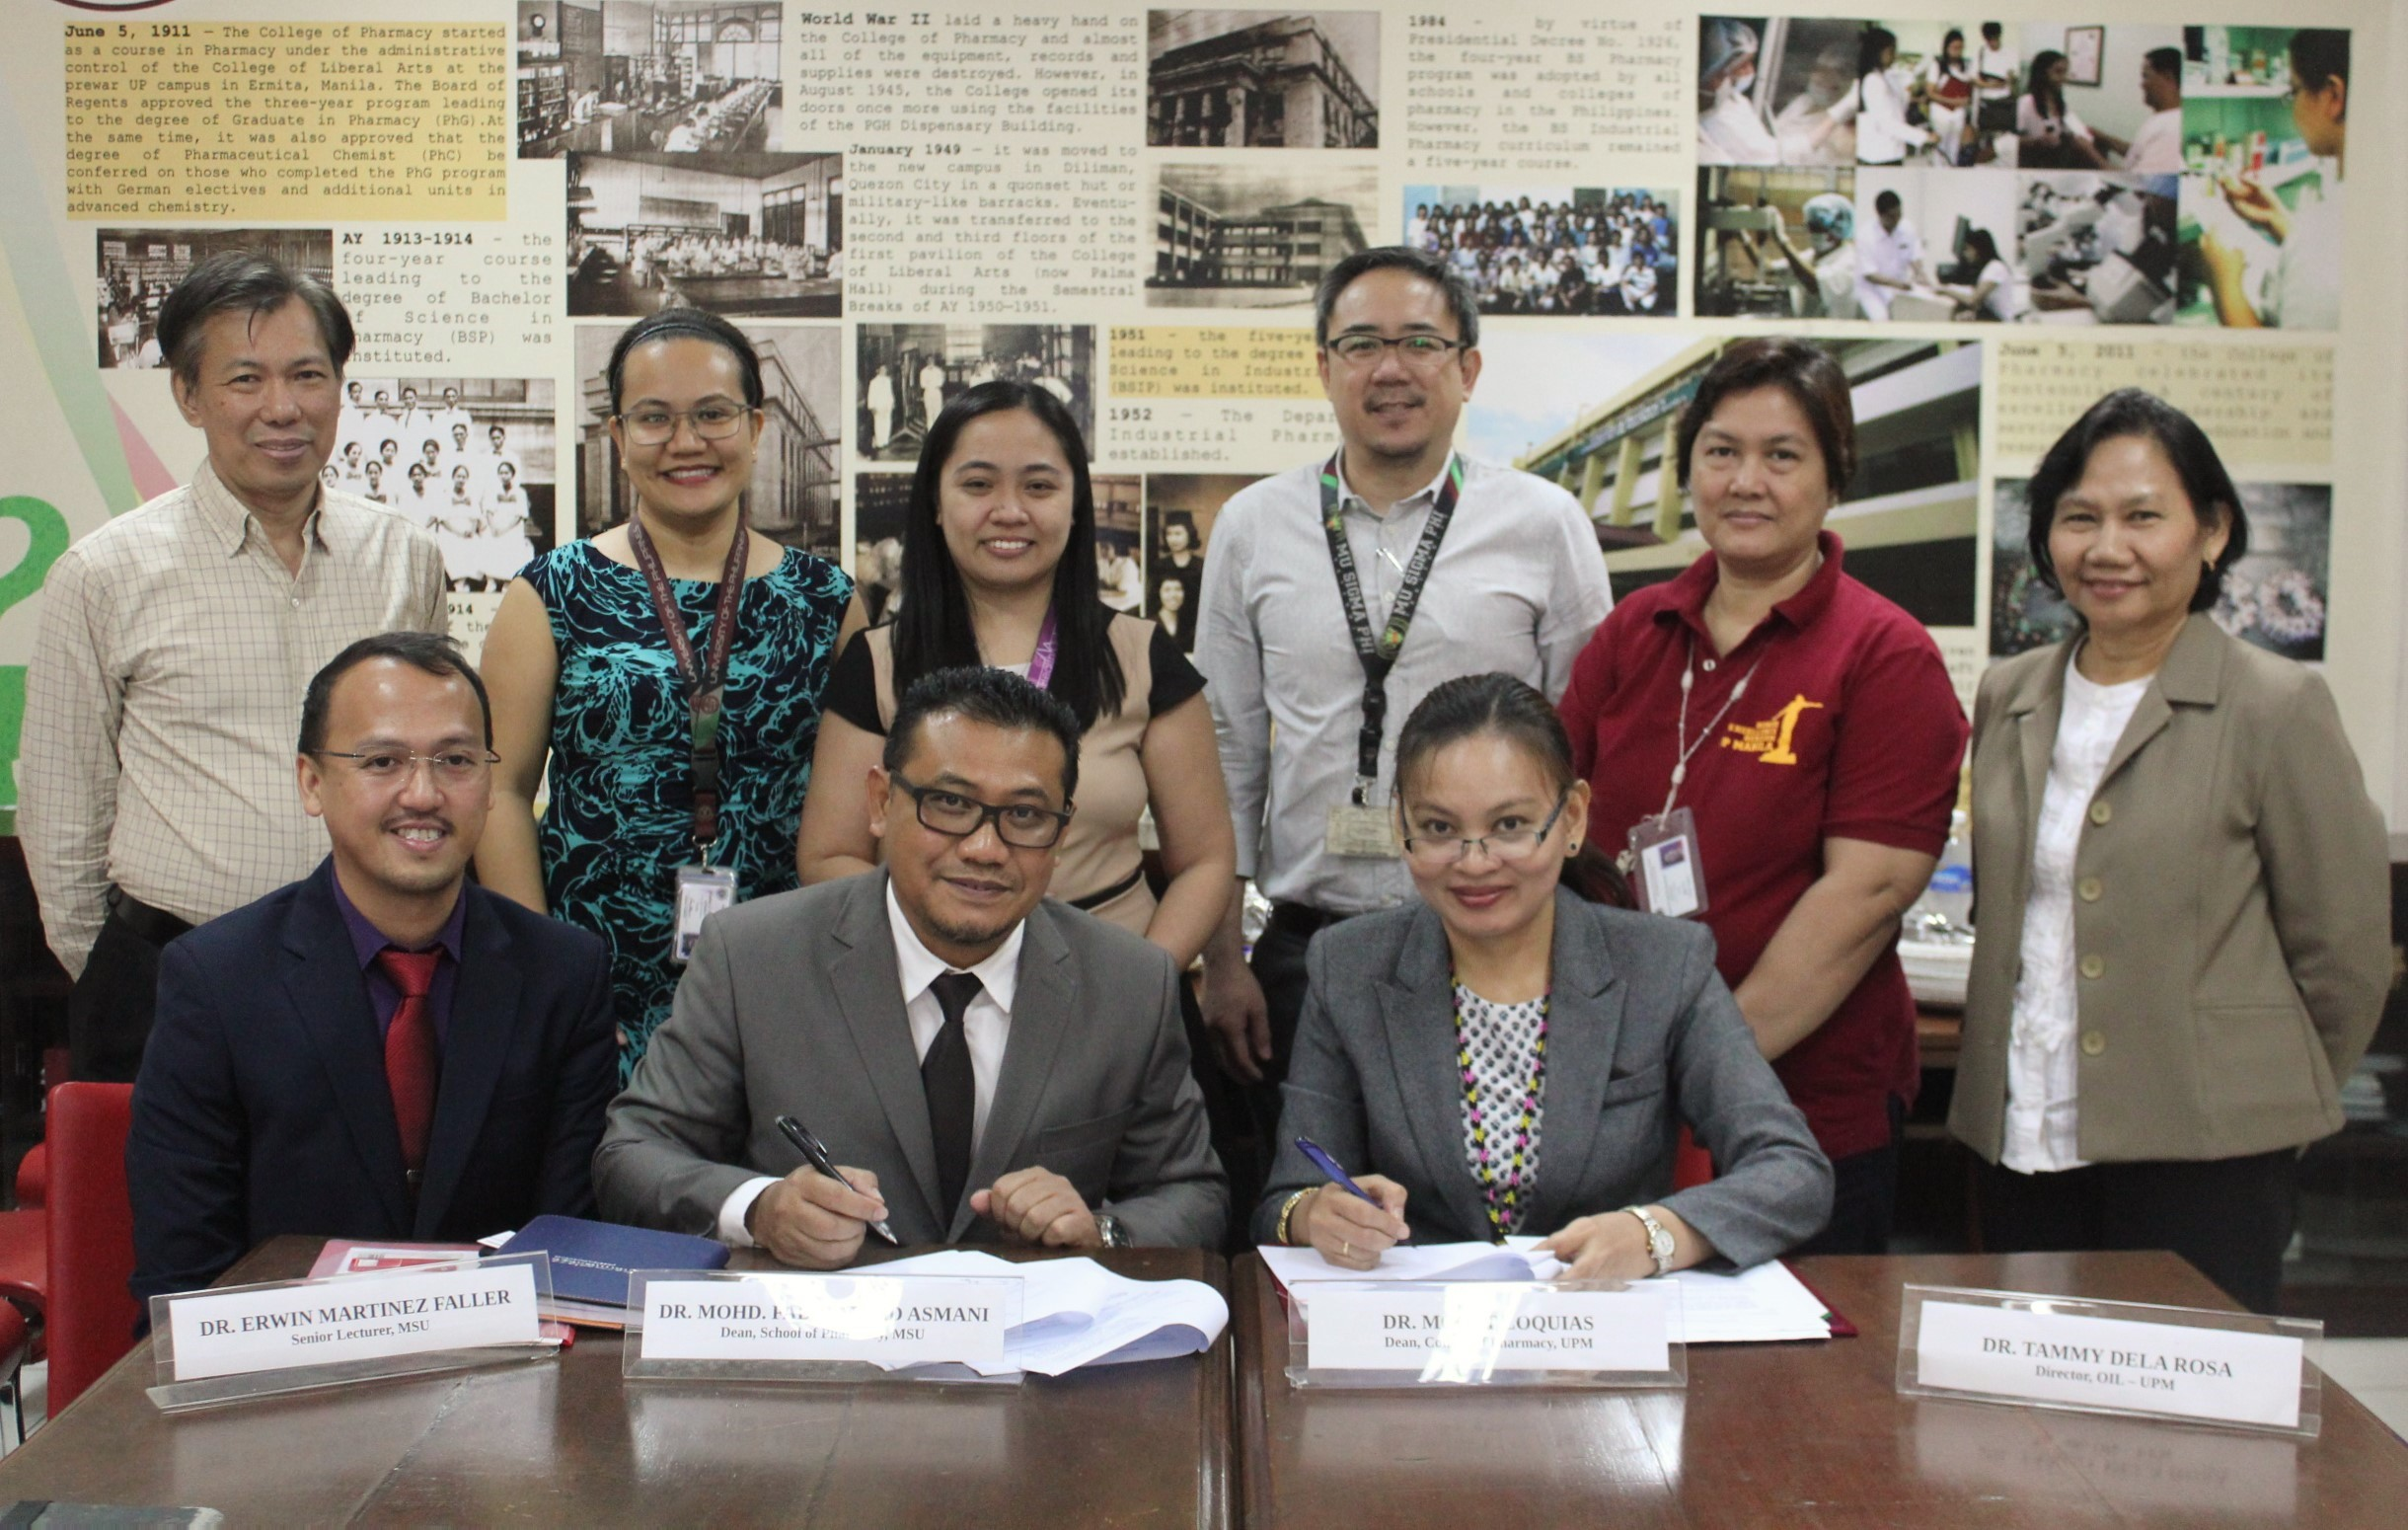 Memorandum Of Understanding Between University Of The Philippines Manila And Management & Science University